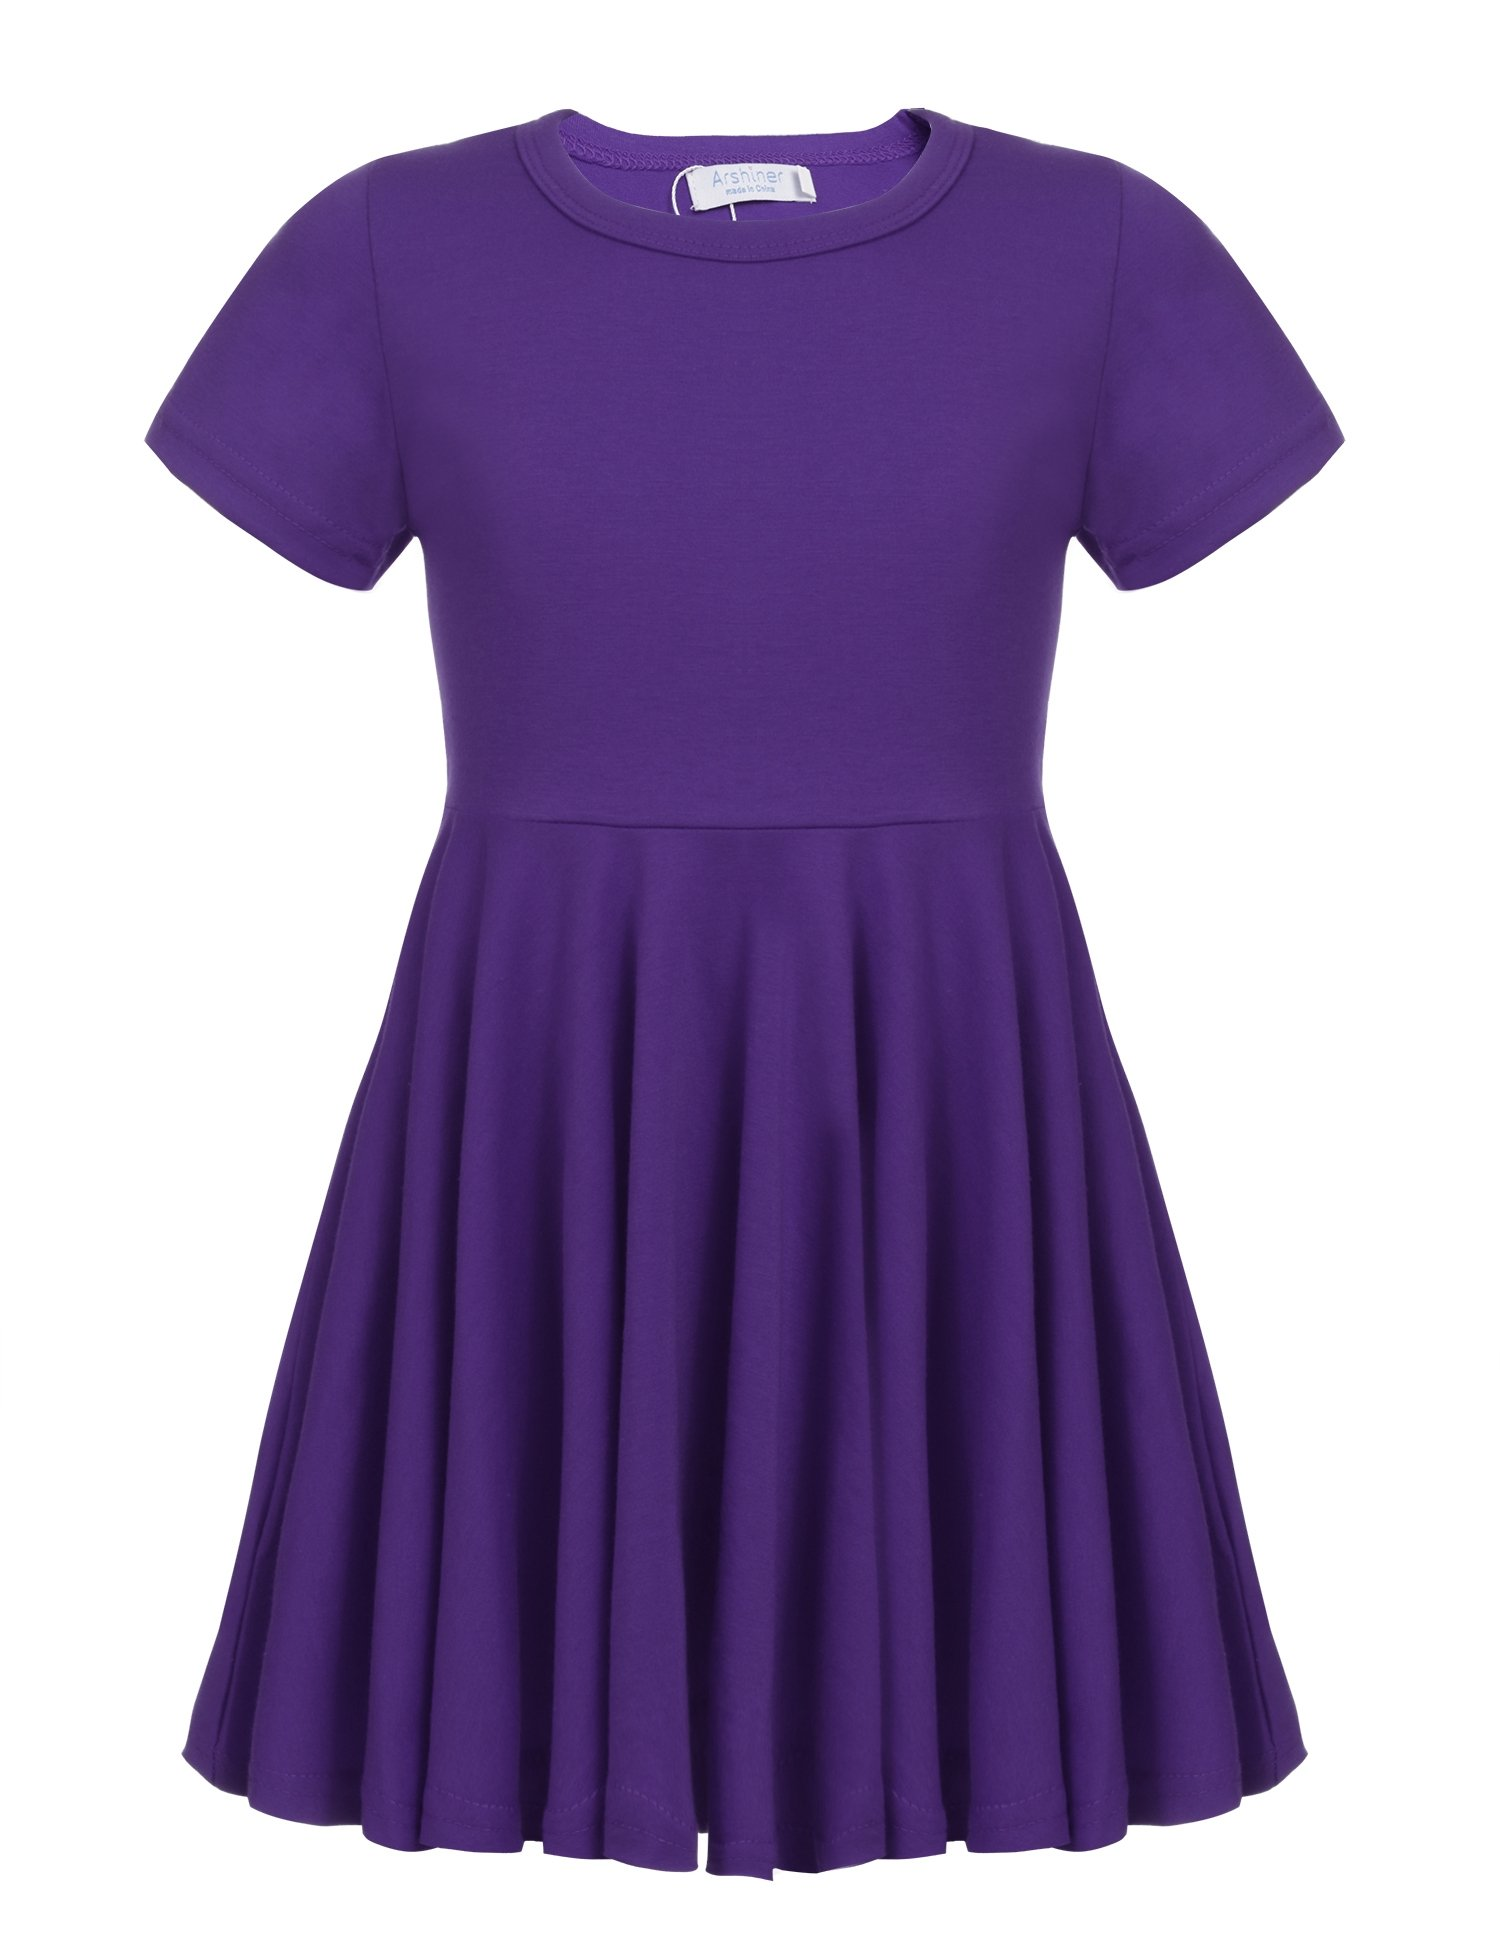 Arshiner Little Girls Short Sleeve A Line Casual Skater Dress Purple 120(Age for 6-7Y)